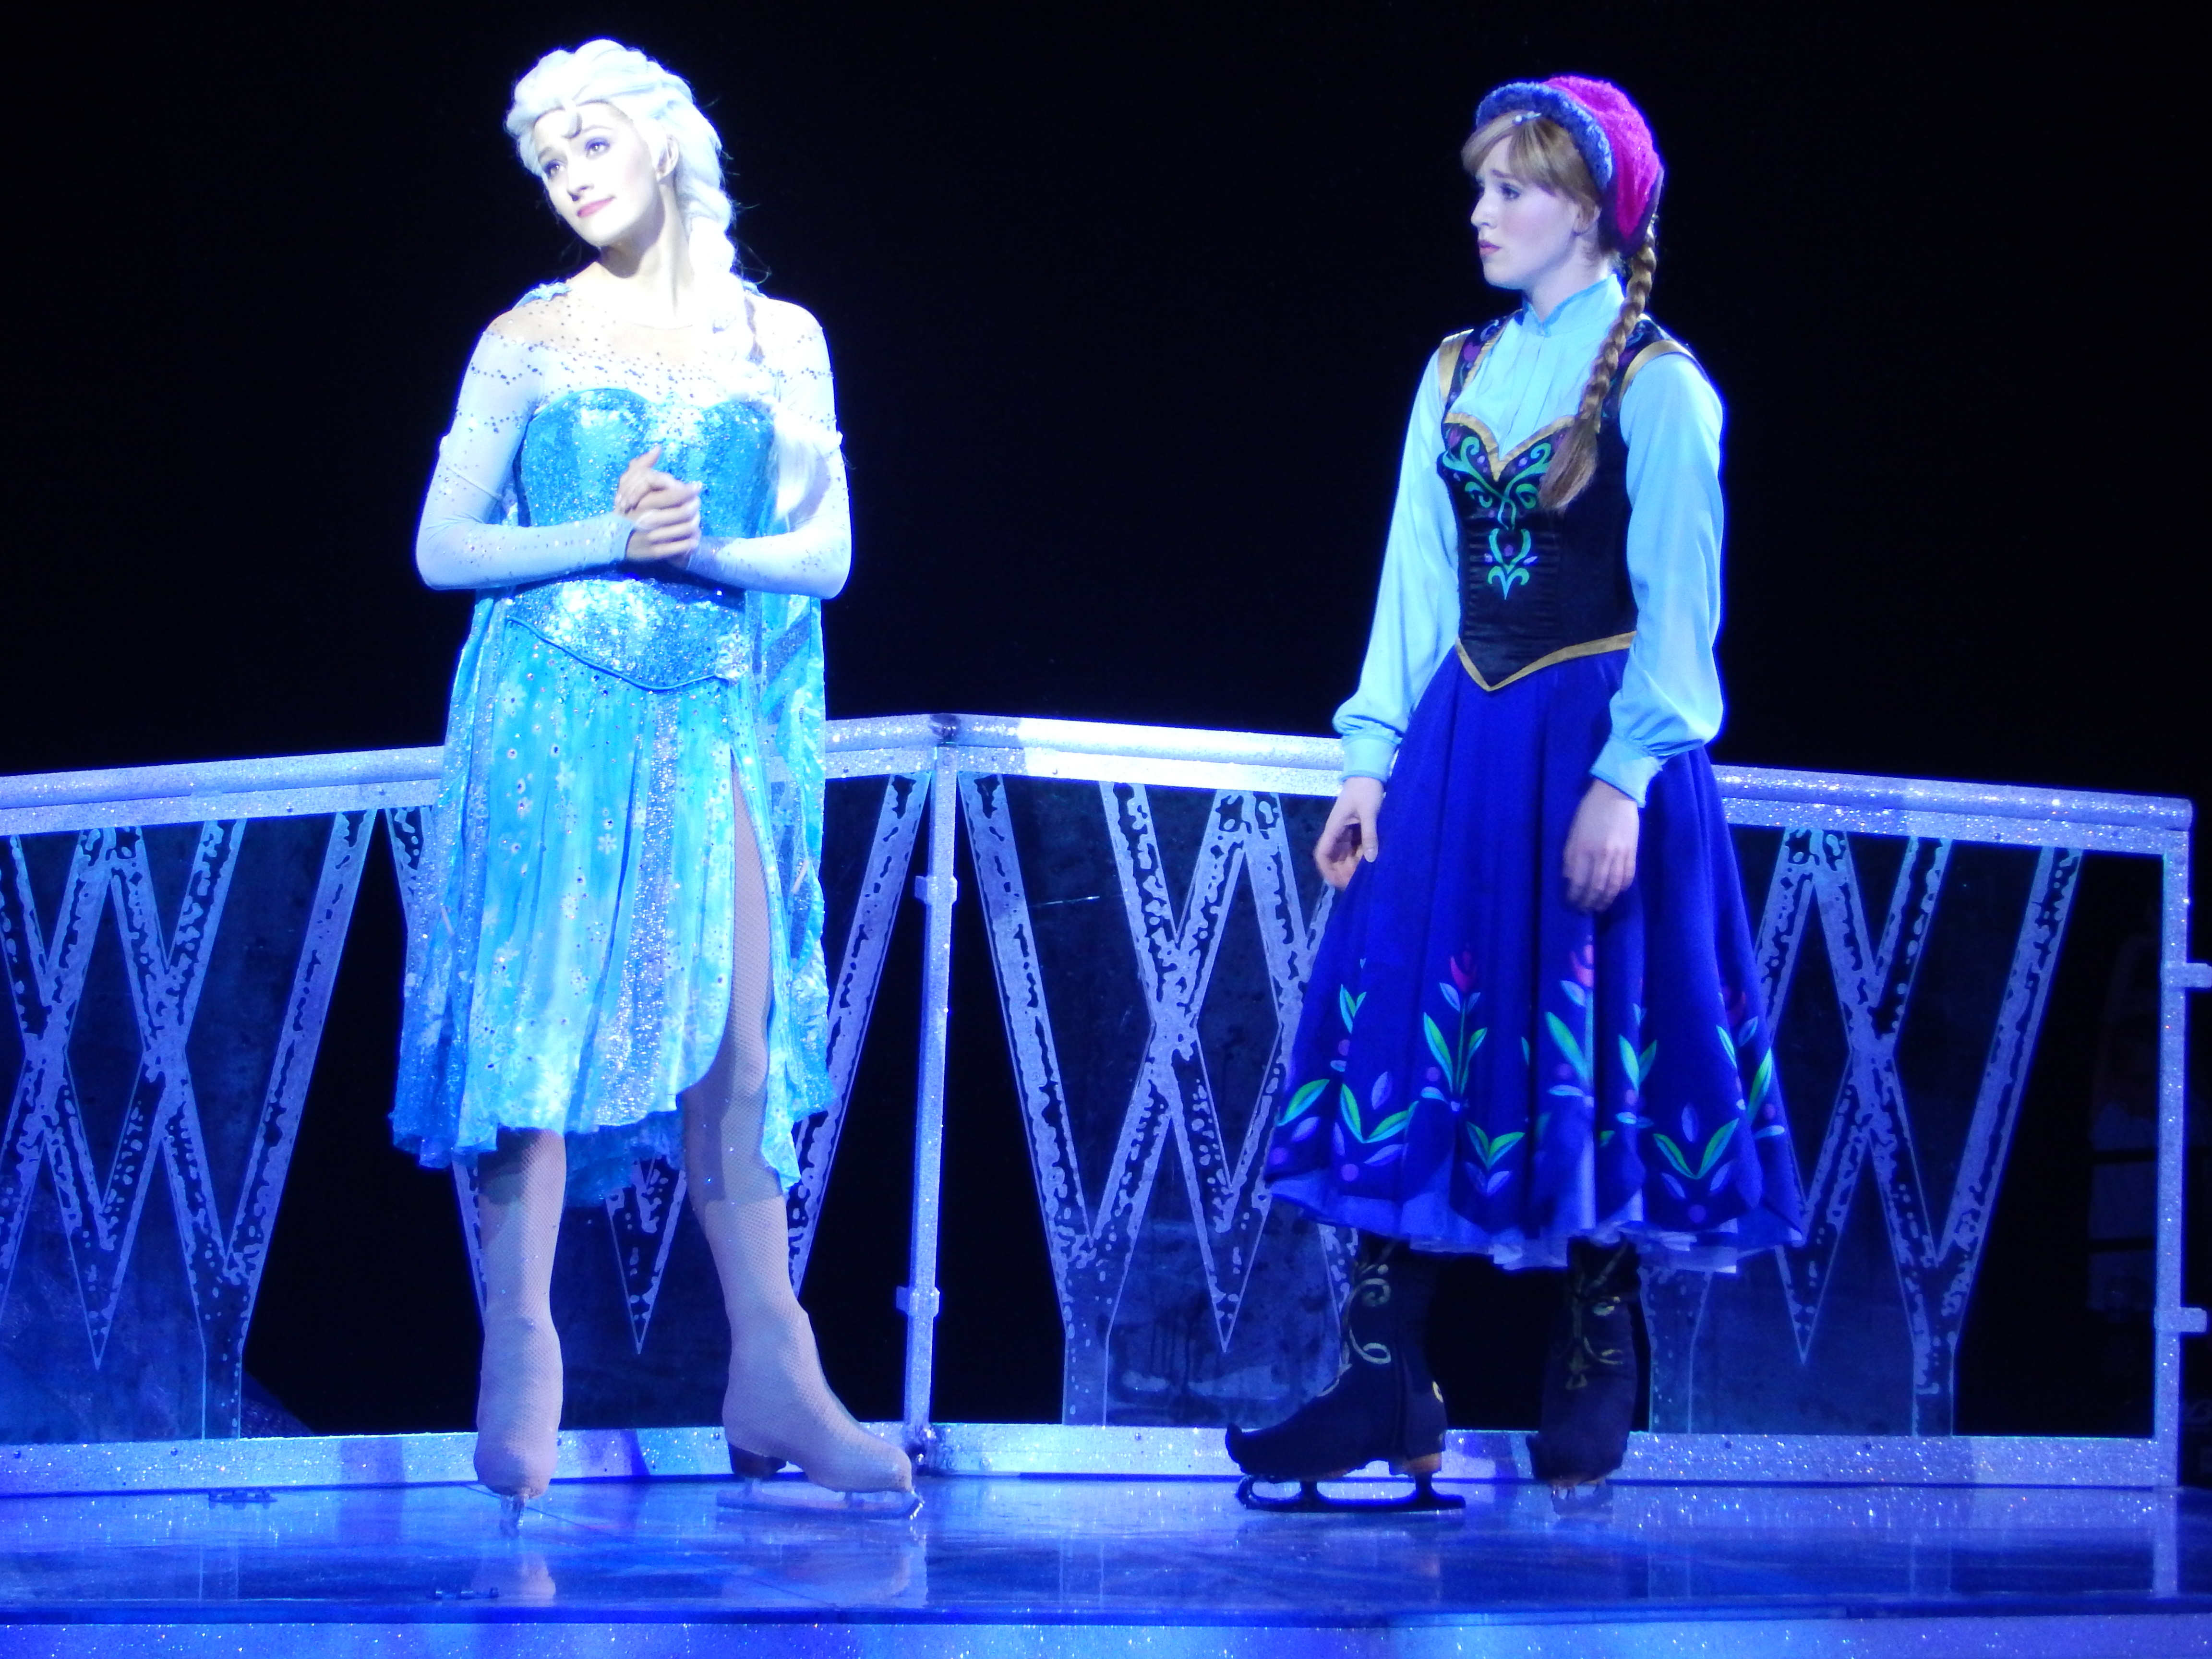 Disney S Frozen On Ice Puts On Really Cool Show At Royal